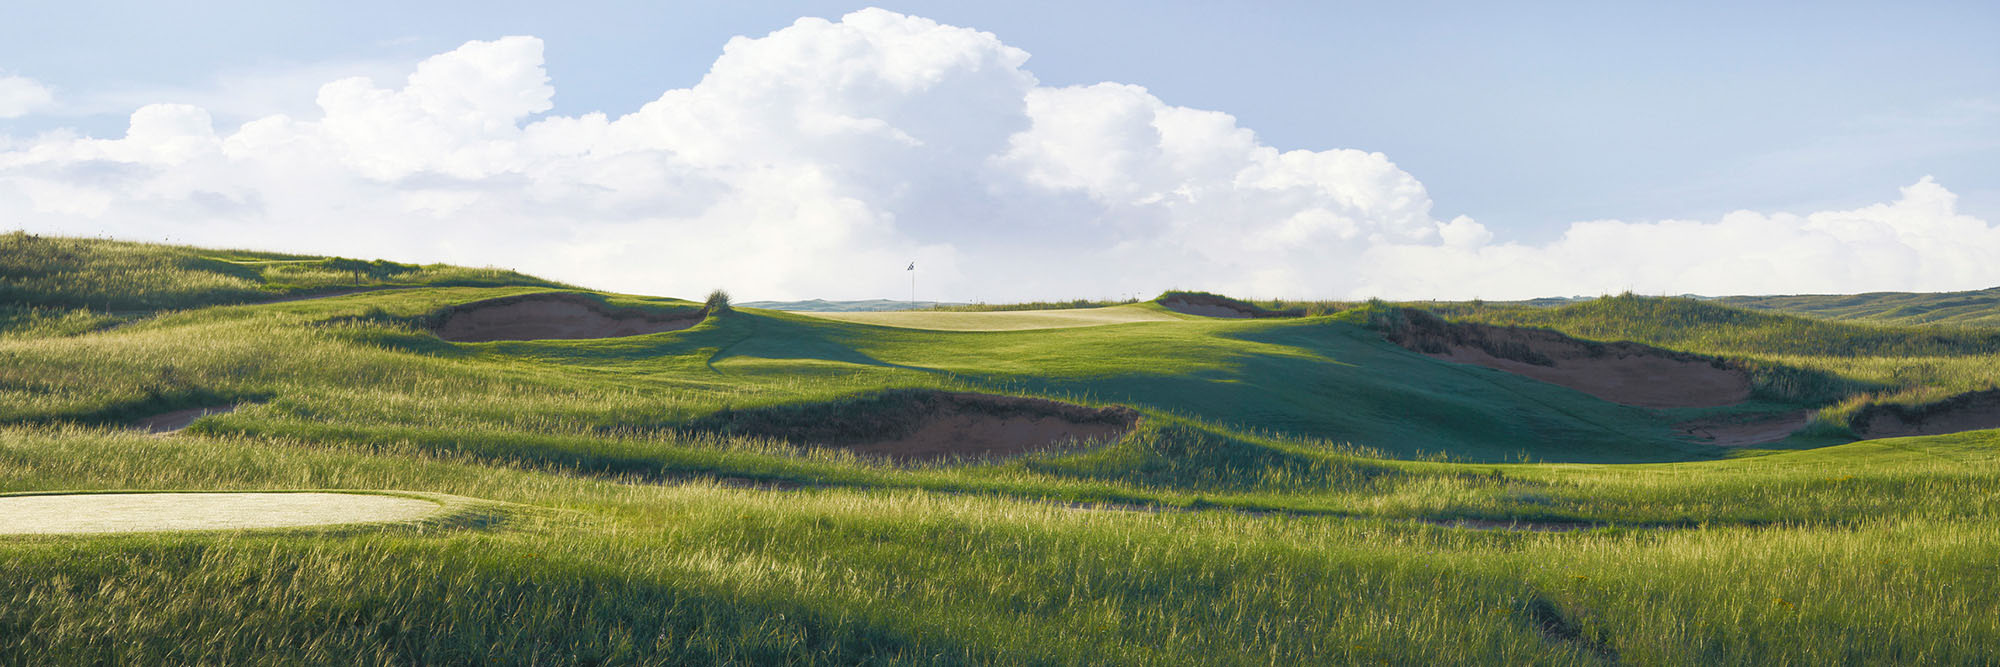 Golf Course Image - Sand Hills No. 13